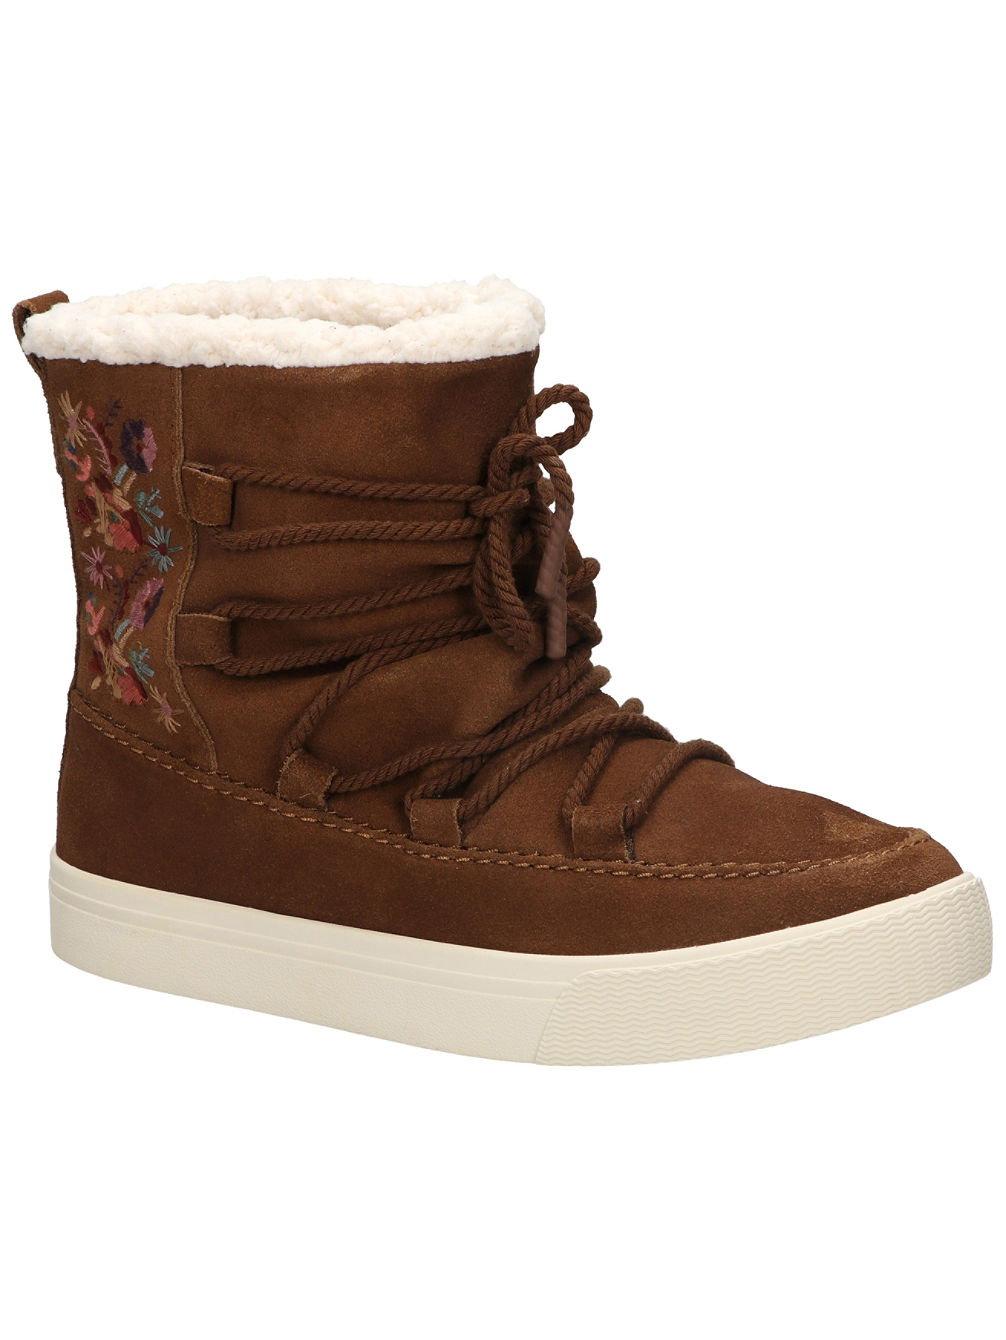 9d7788dcf5a Buy TOMS Alpine Boots online at Blue Tomato